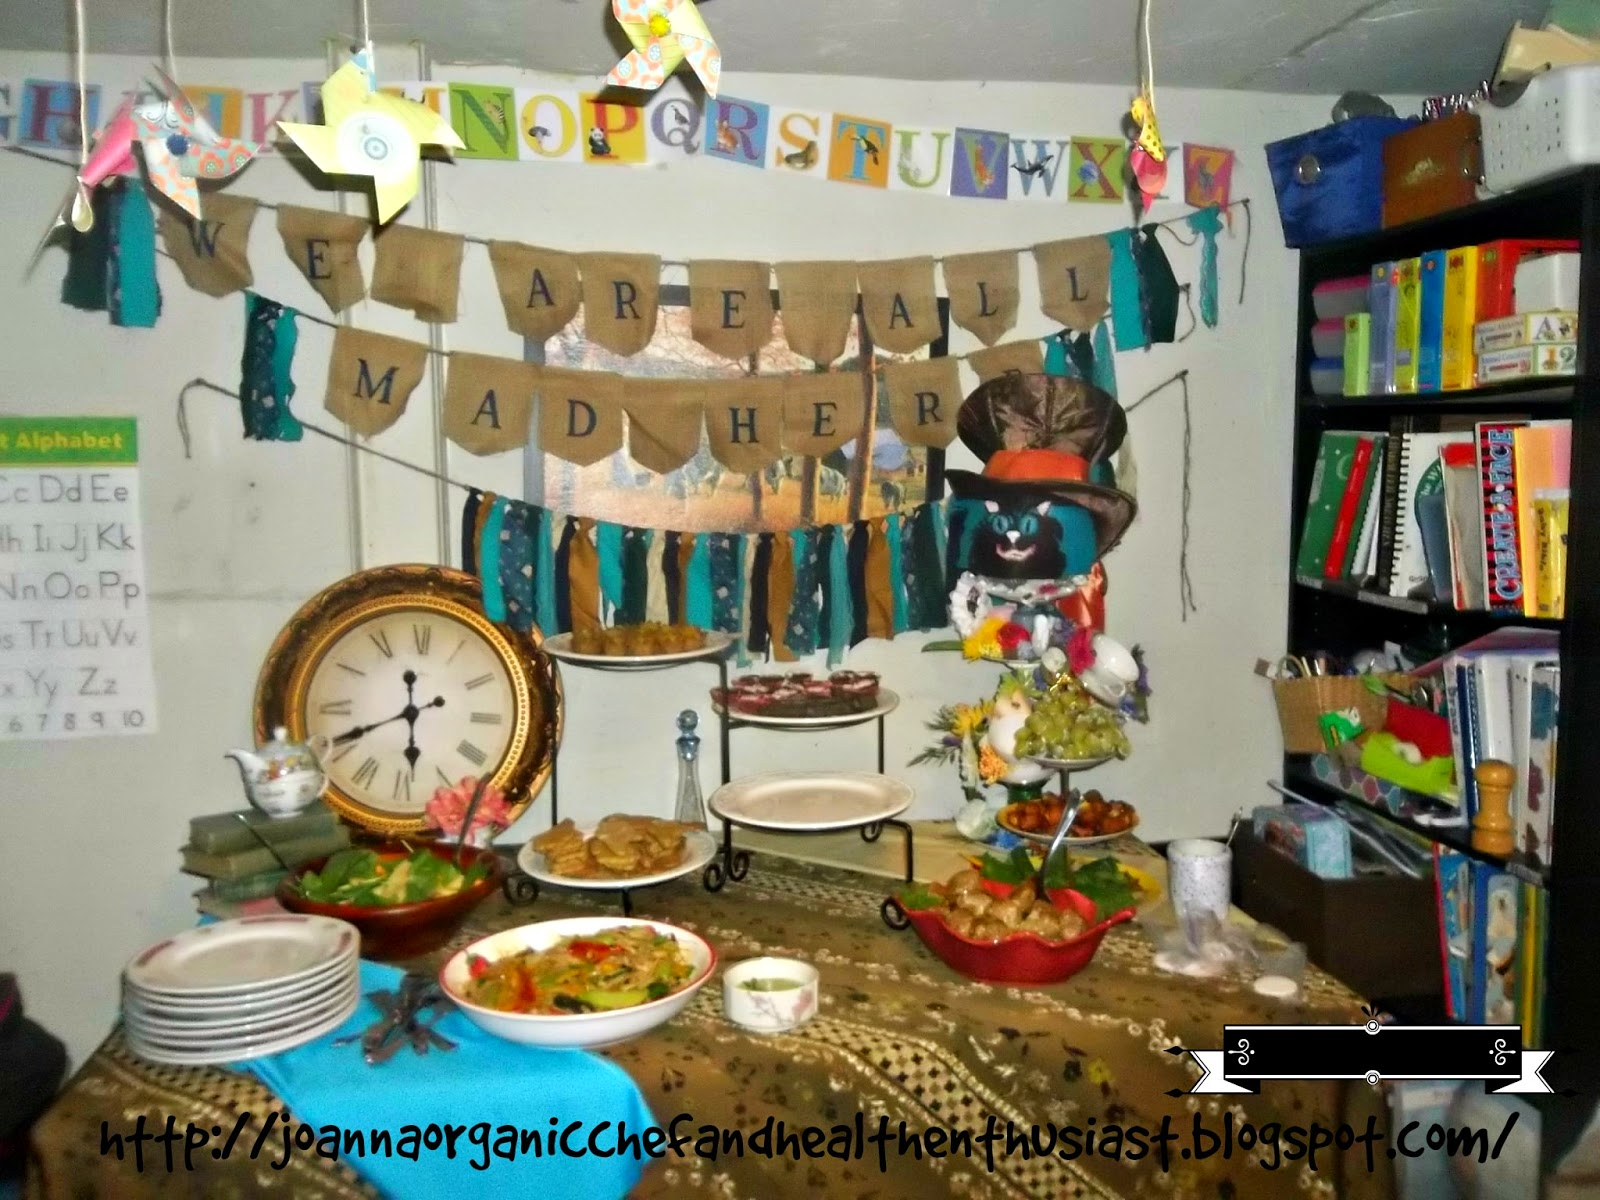 A Glimpse Of The Mad Hatter Tea Party Baby Shower I Hosted Last Weekend